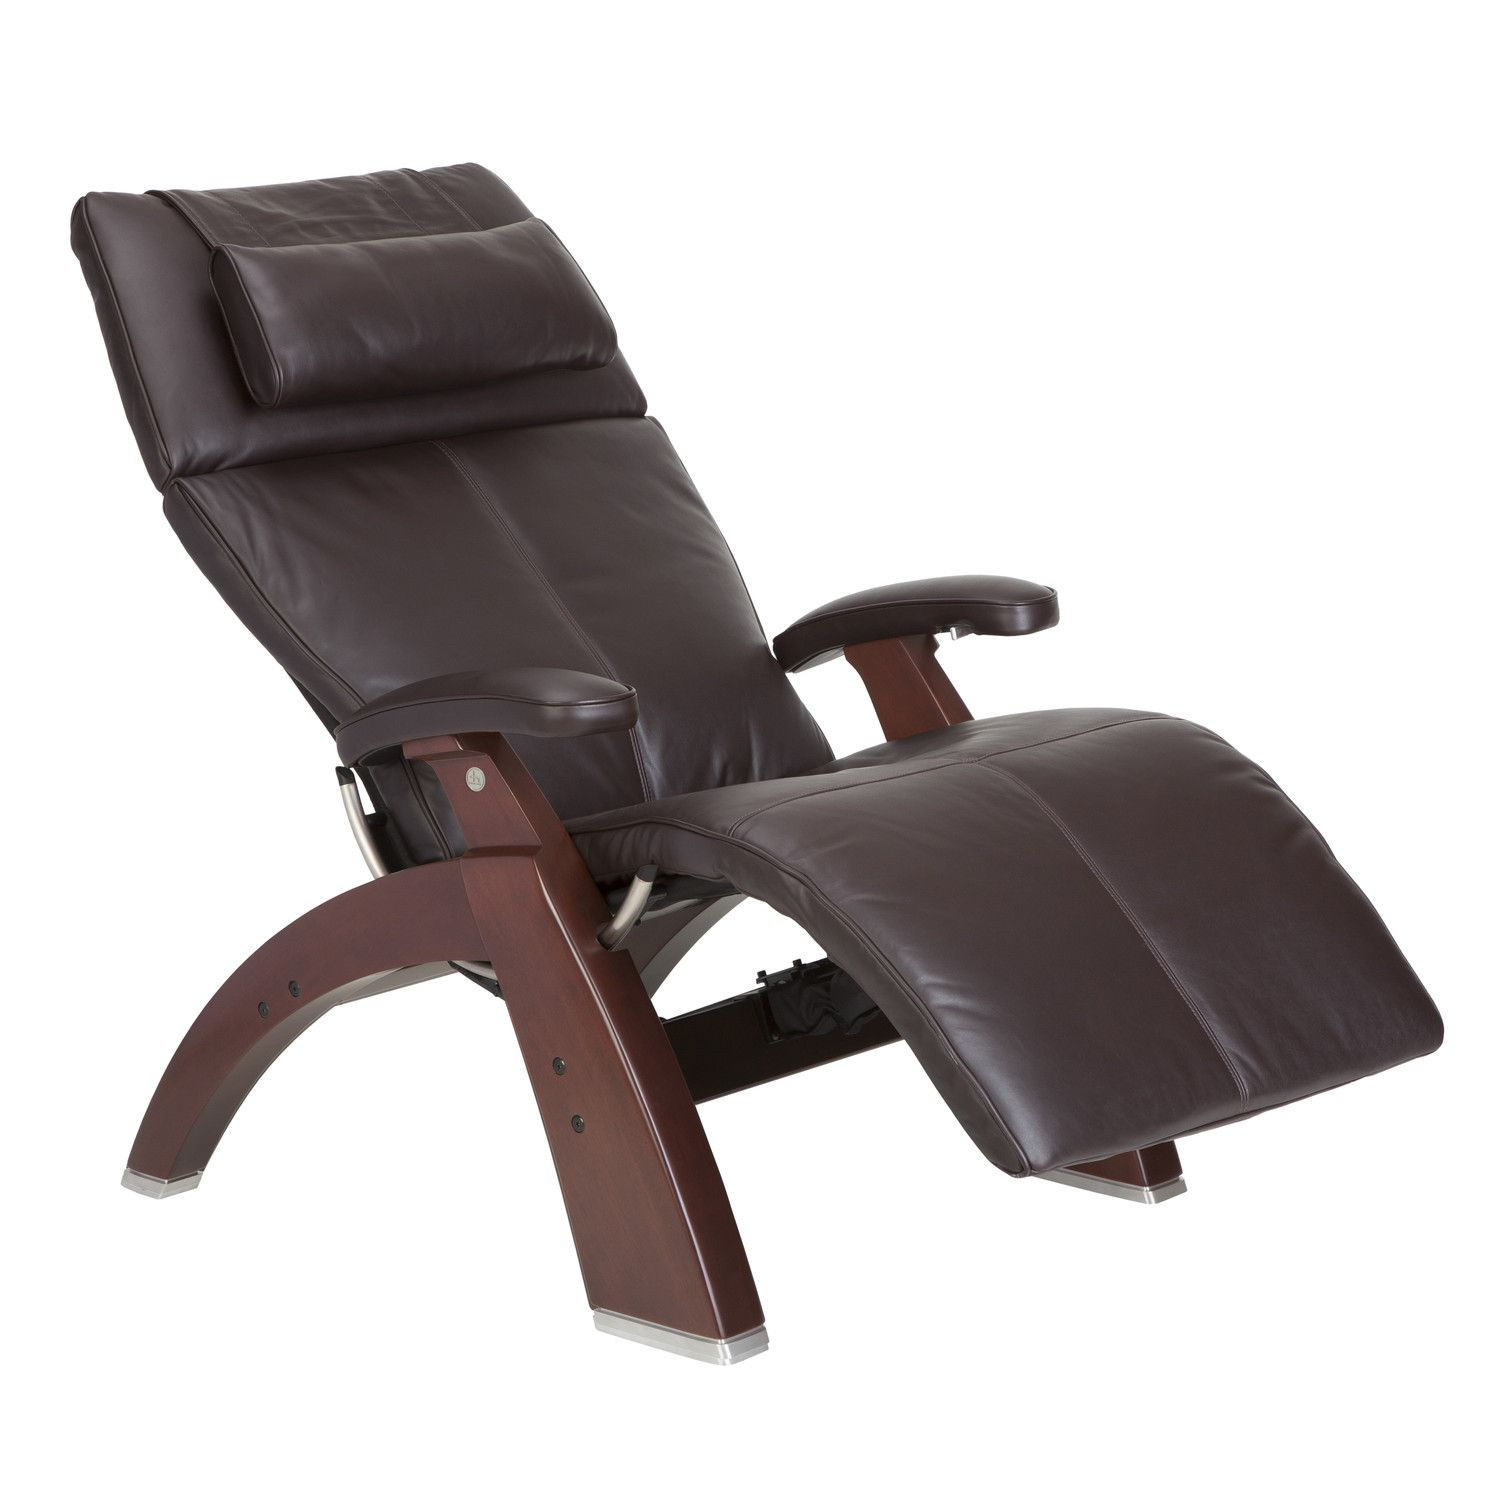 Dark Brown Leather Recliner Chair furniture, modern human touch perfect chair silhouette zero